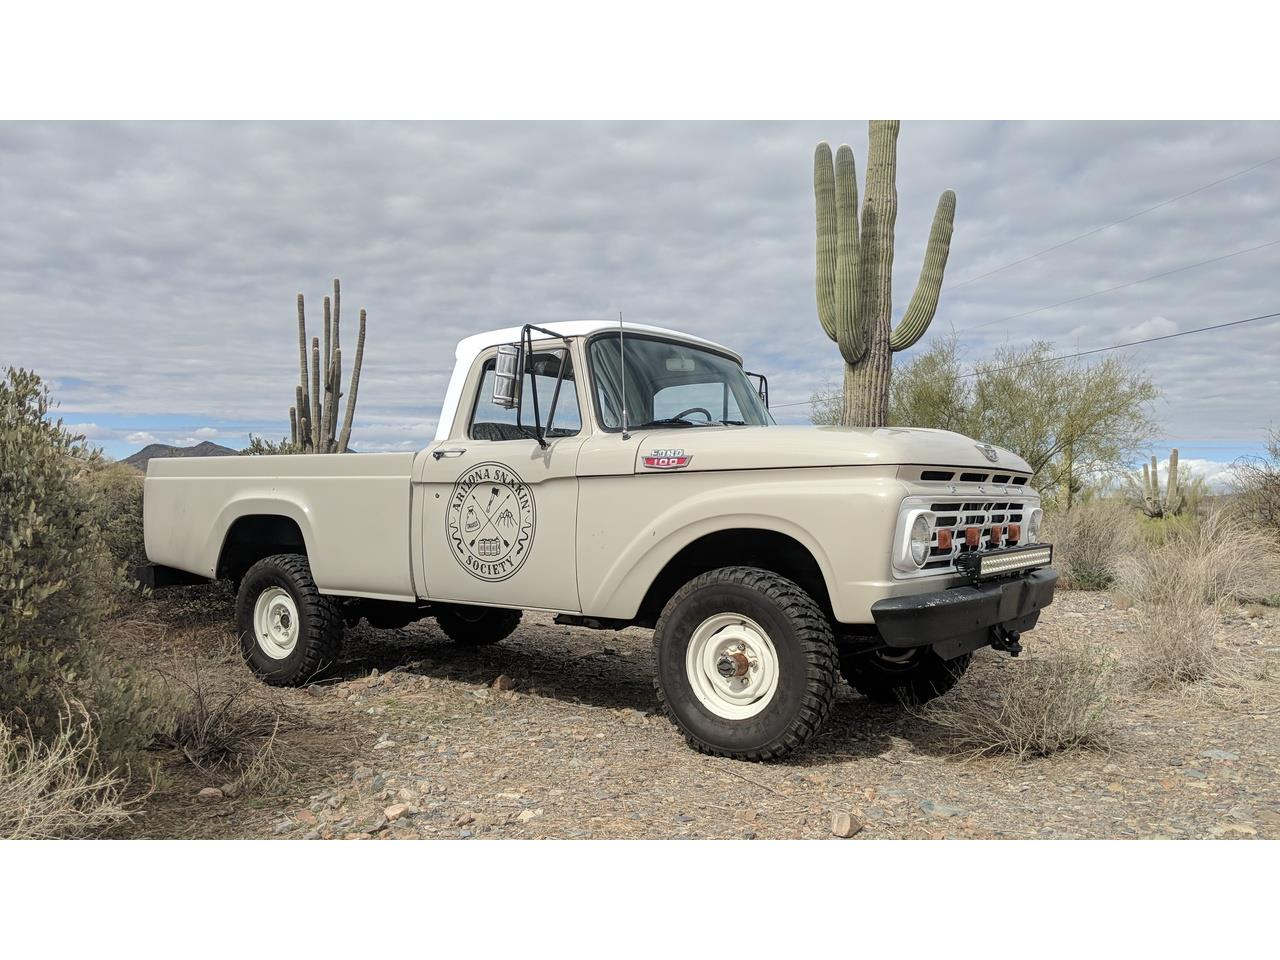 1964 Ford F100 For Sale Cc 1070463 1954 4x4 Large Picture Of 64 Offered By A Private Seller Mxz3